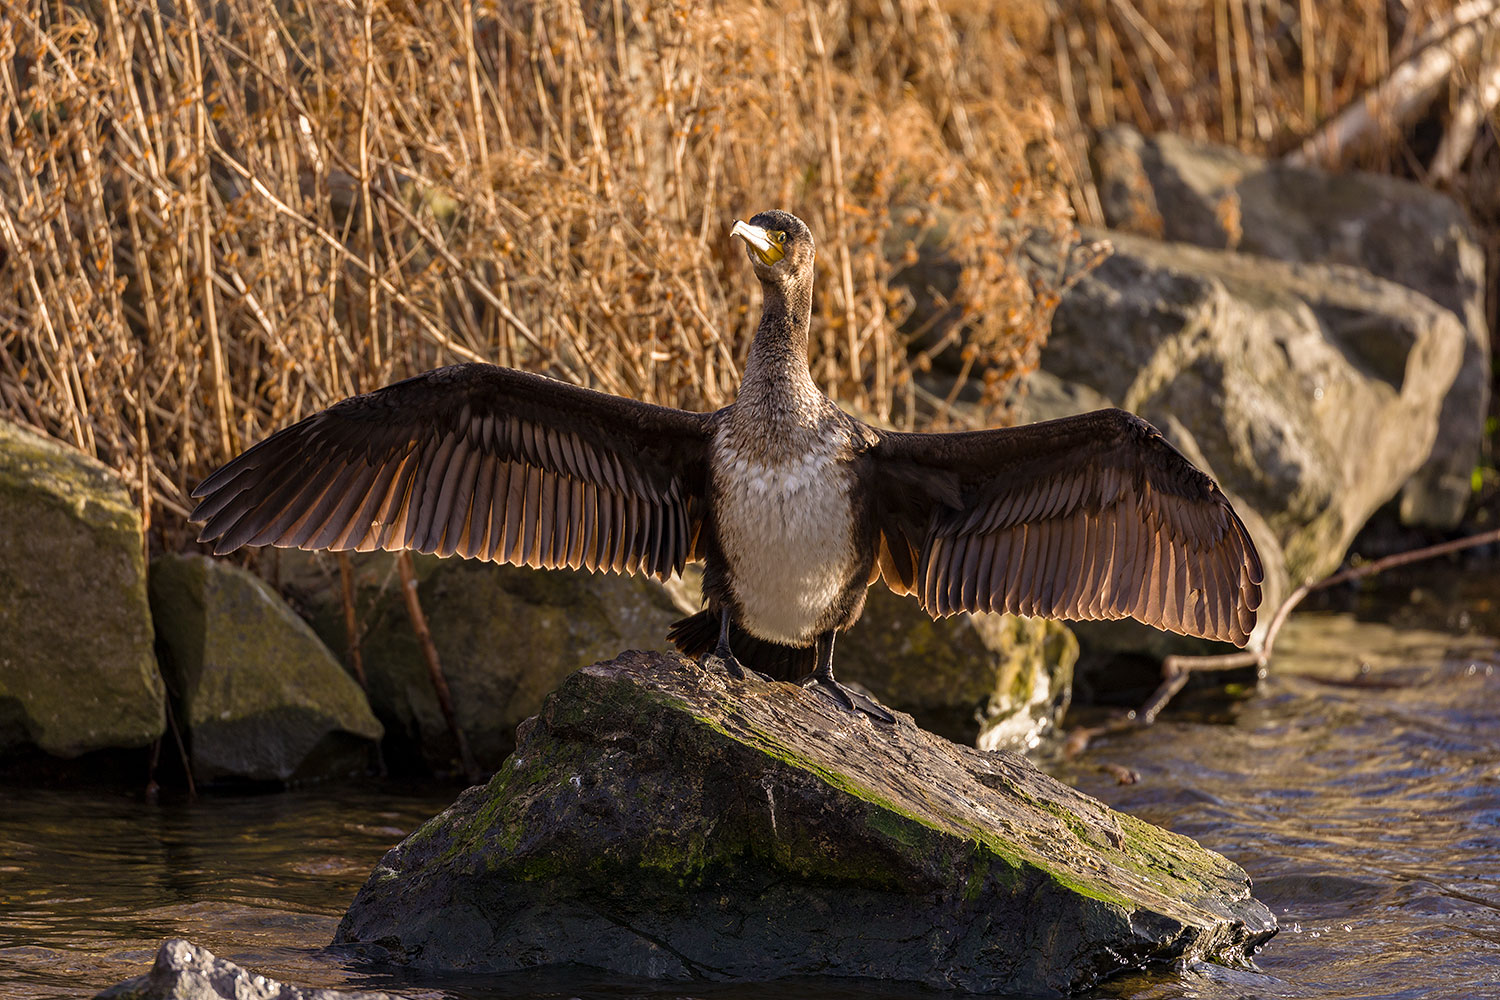 IMAGE: http://www.capnfishy.co.uk/wp-content/uploads/2015/02/Cormorants15Jan19_1091.jpg